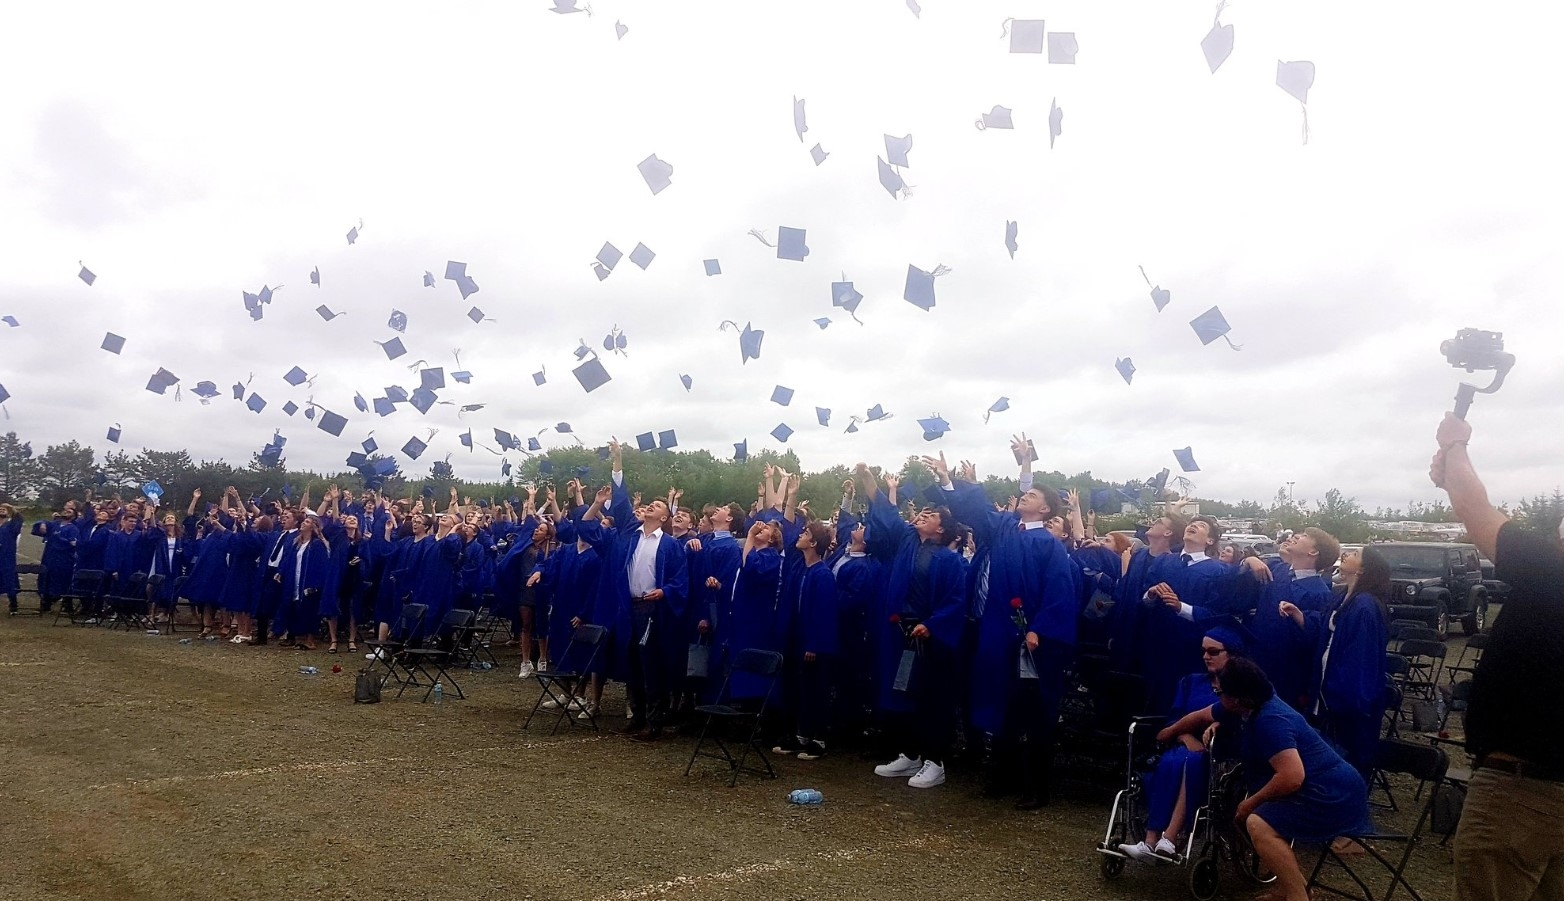 Outdoor graduation ceremony with people packed close together